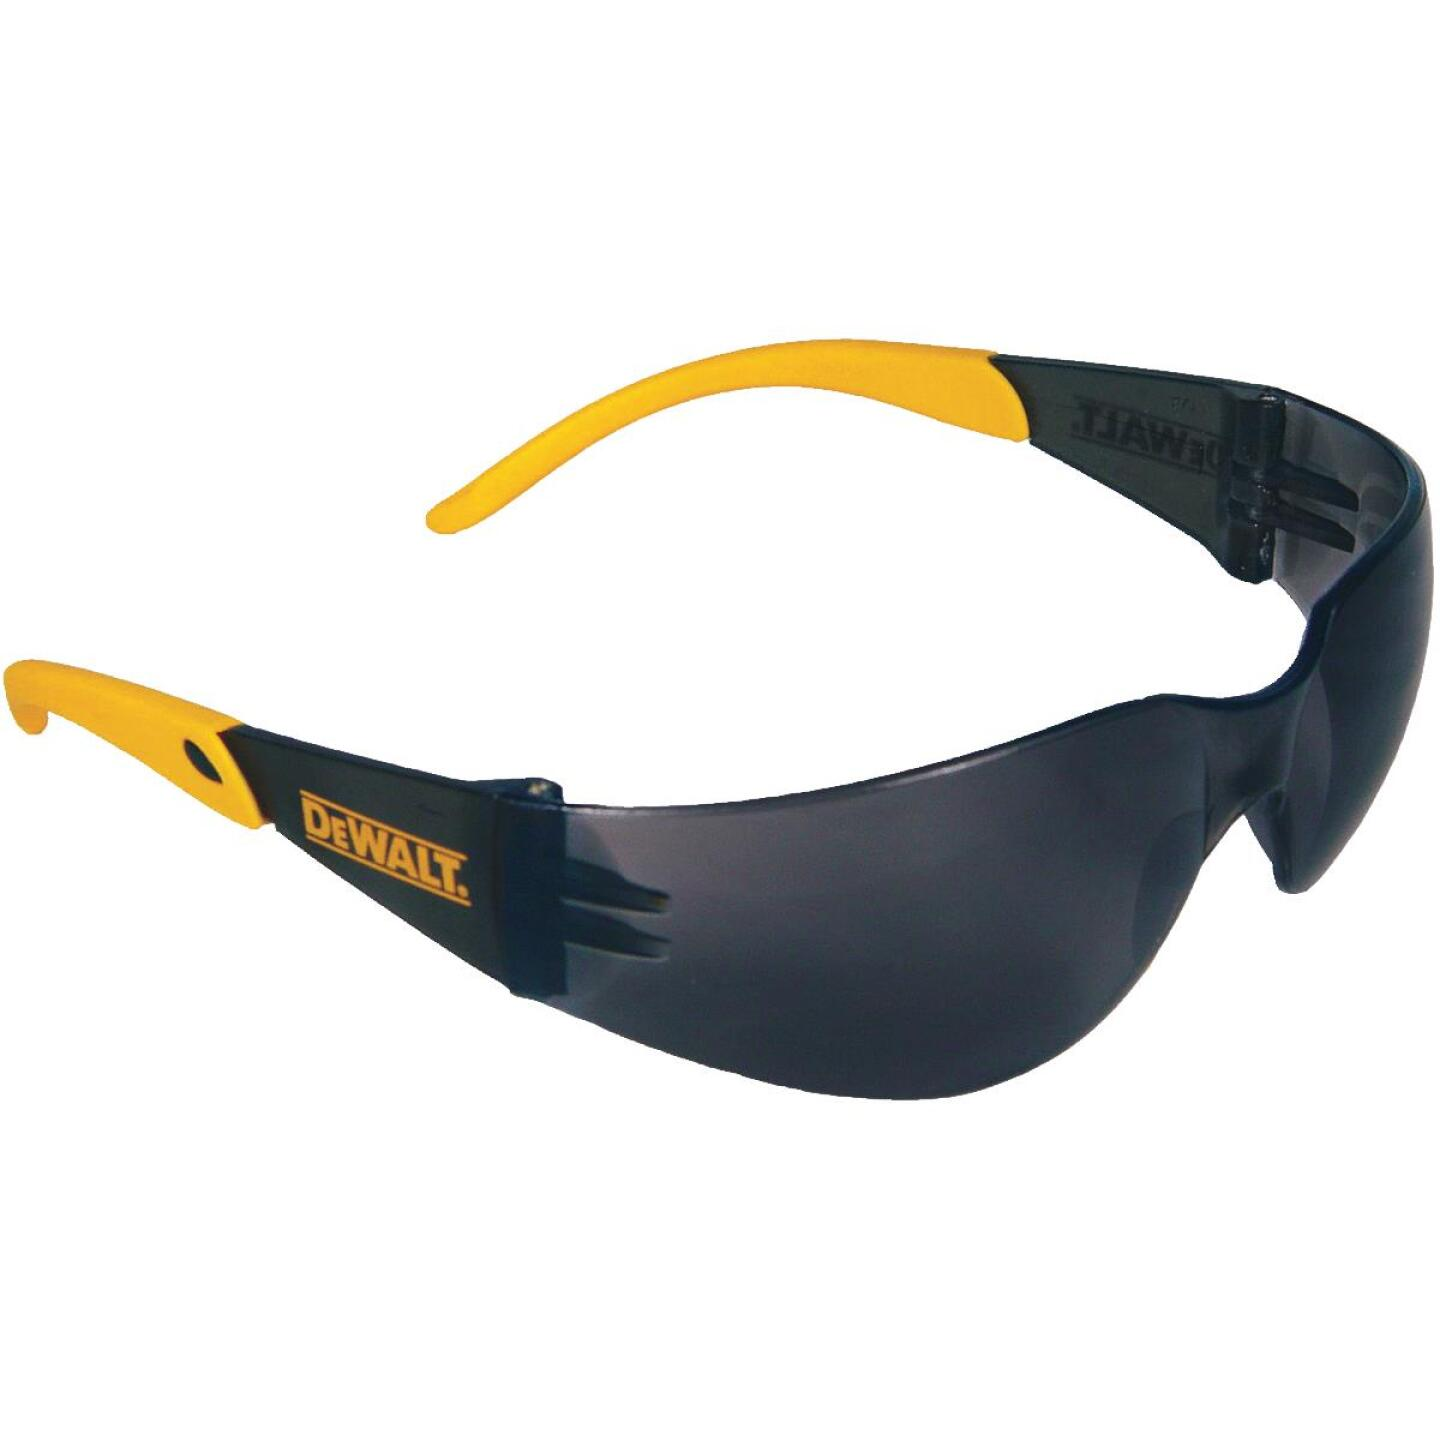 DeWalt Protector Black/Yellow Frame Safety Glasses with Smoke Lenses Image 1